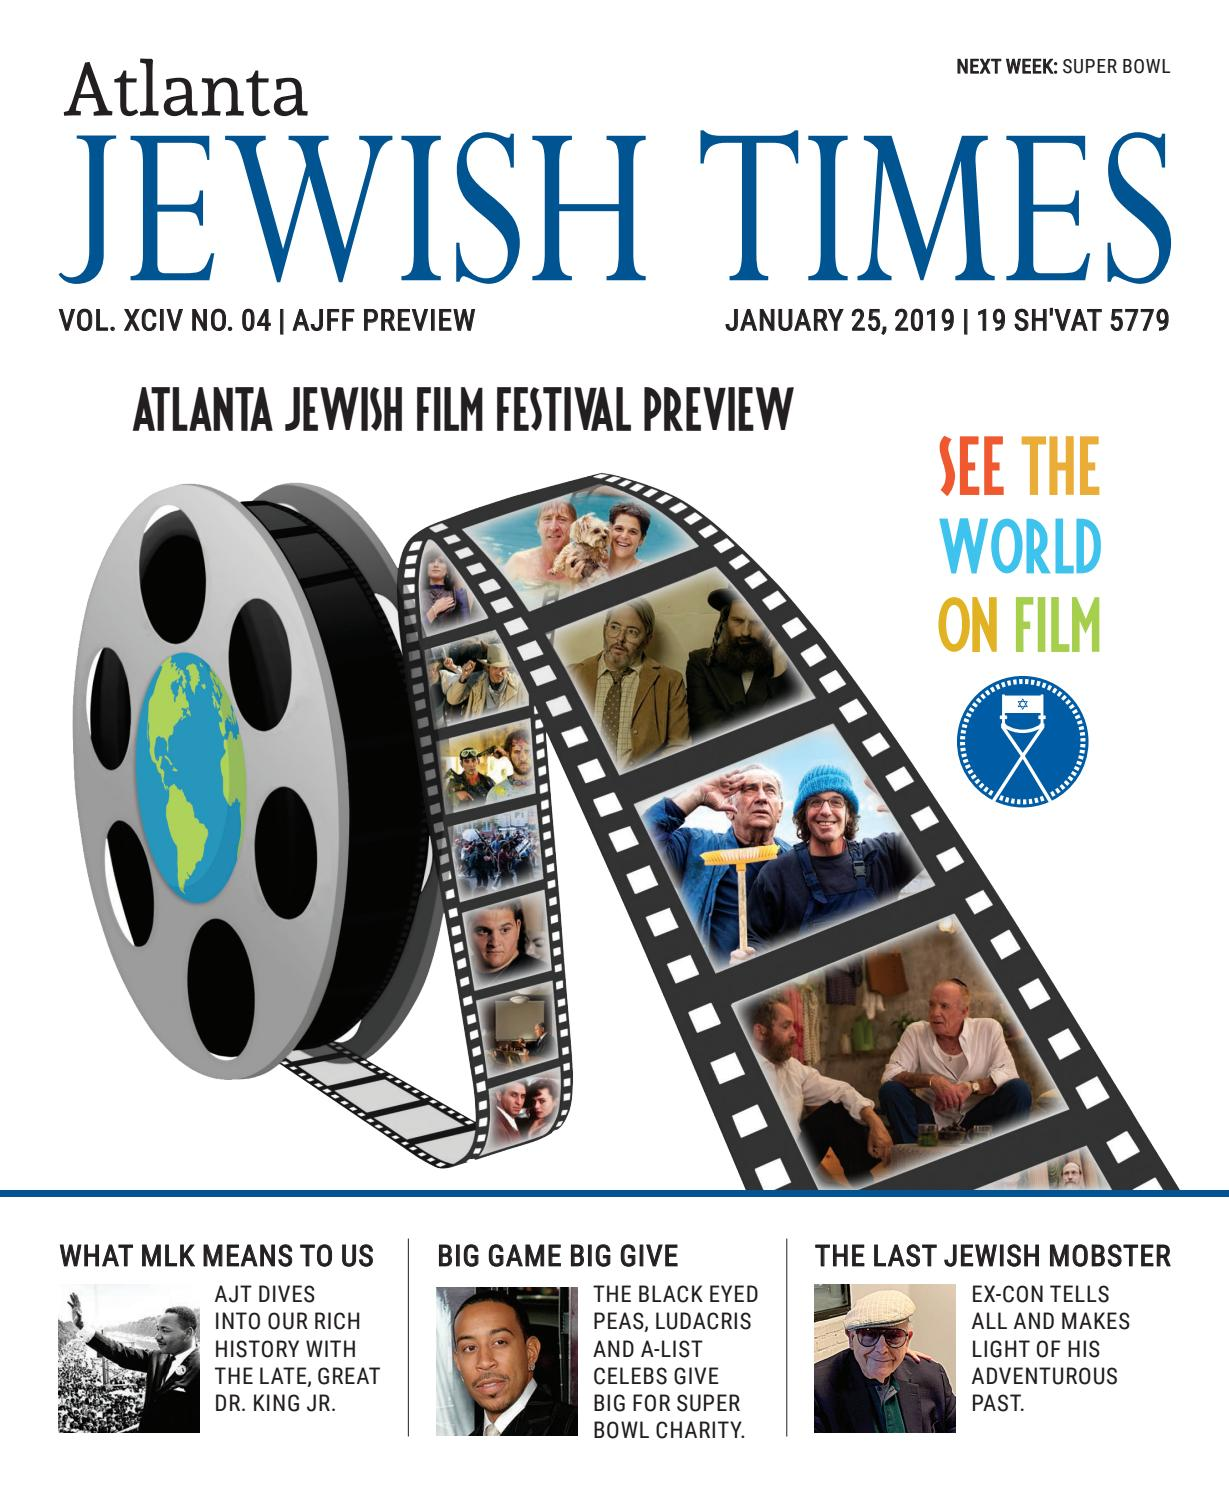 Atlanta Jewish Times, XCIV No  04, January 25, 2019 by Atlanta